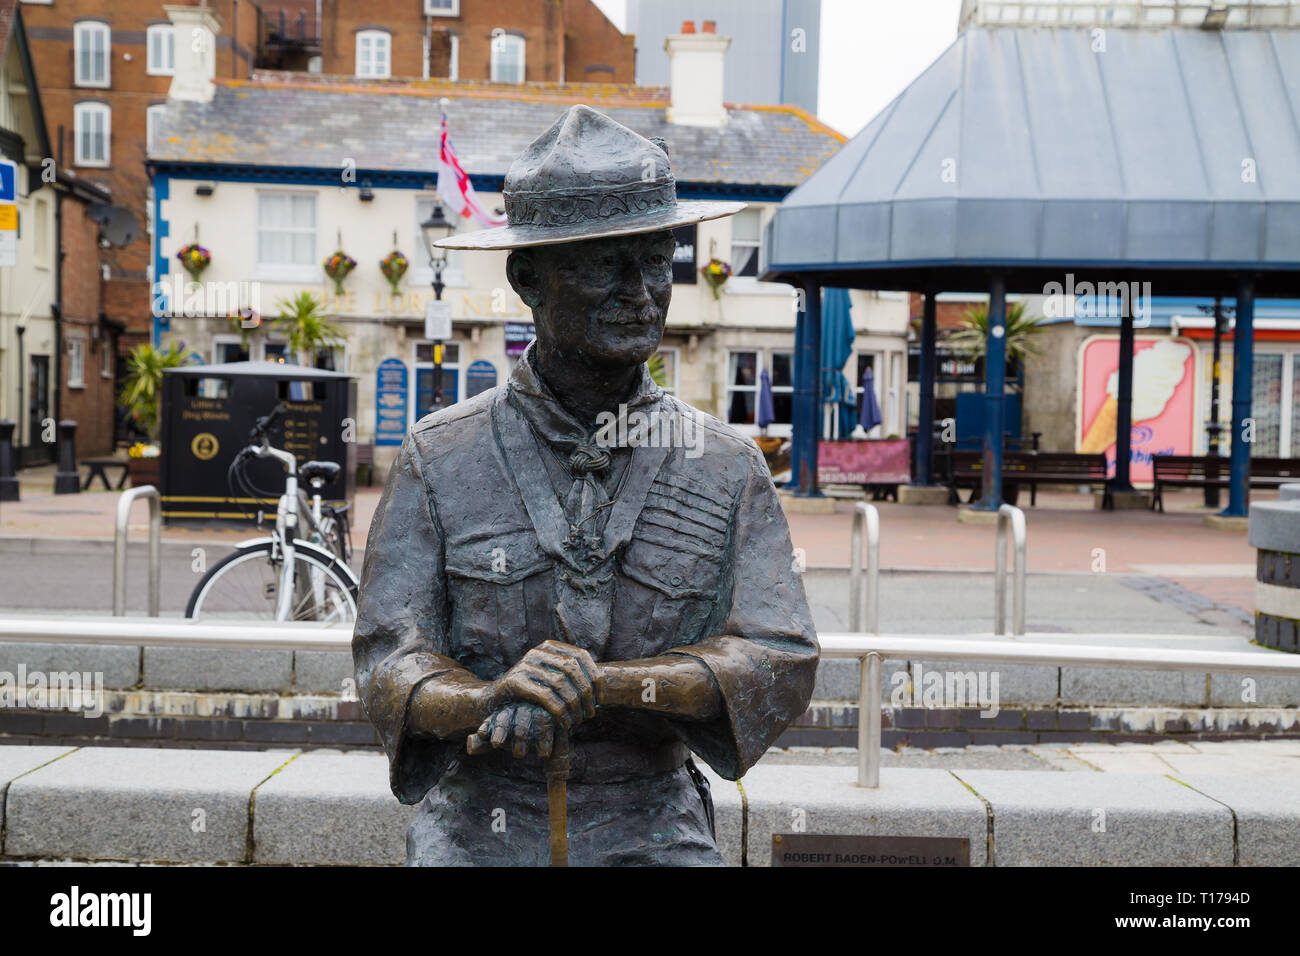 Statue of Robert Baden-Powell, the founder of the Boy Scout movement. - Stock Image